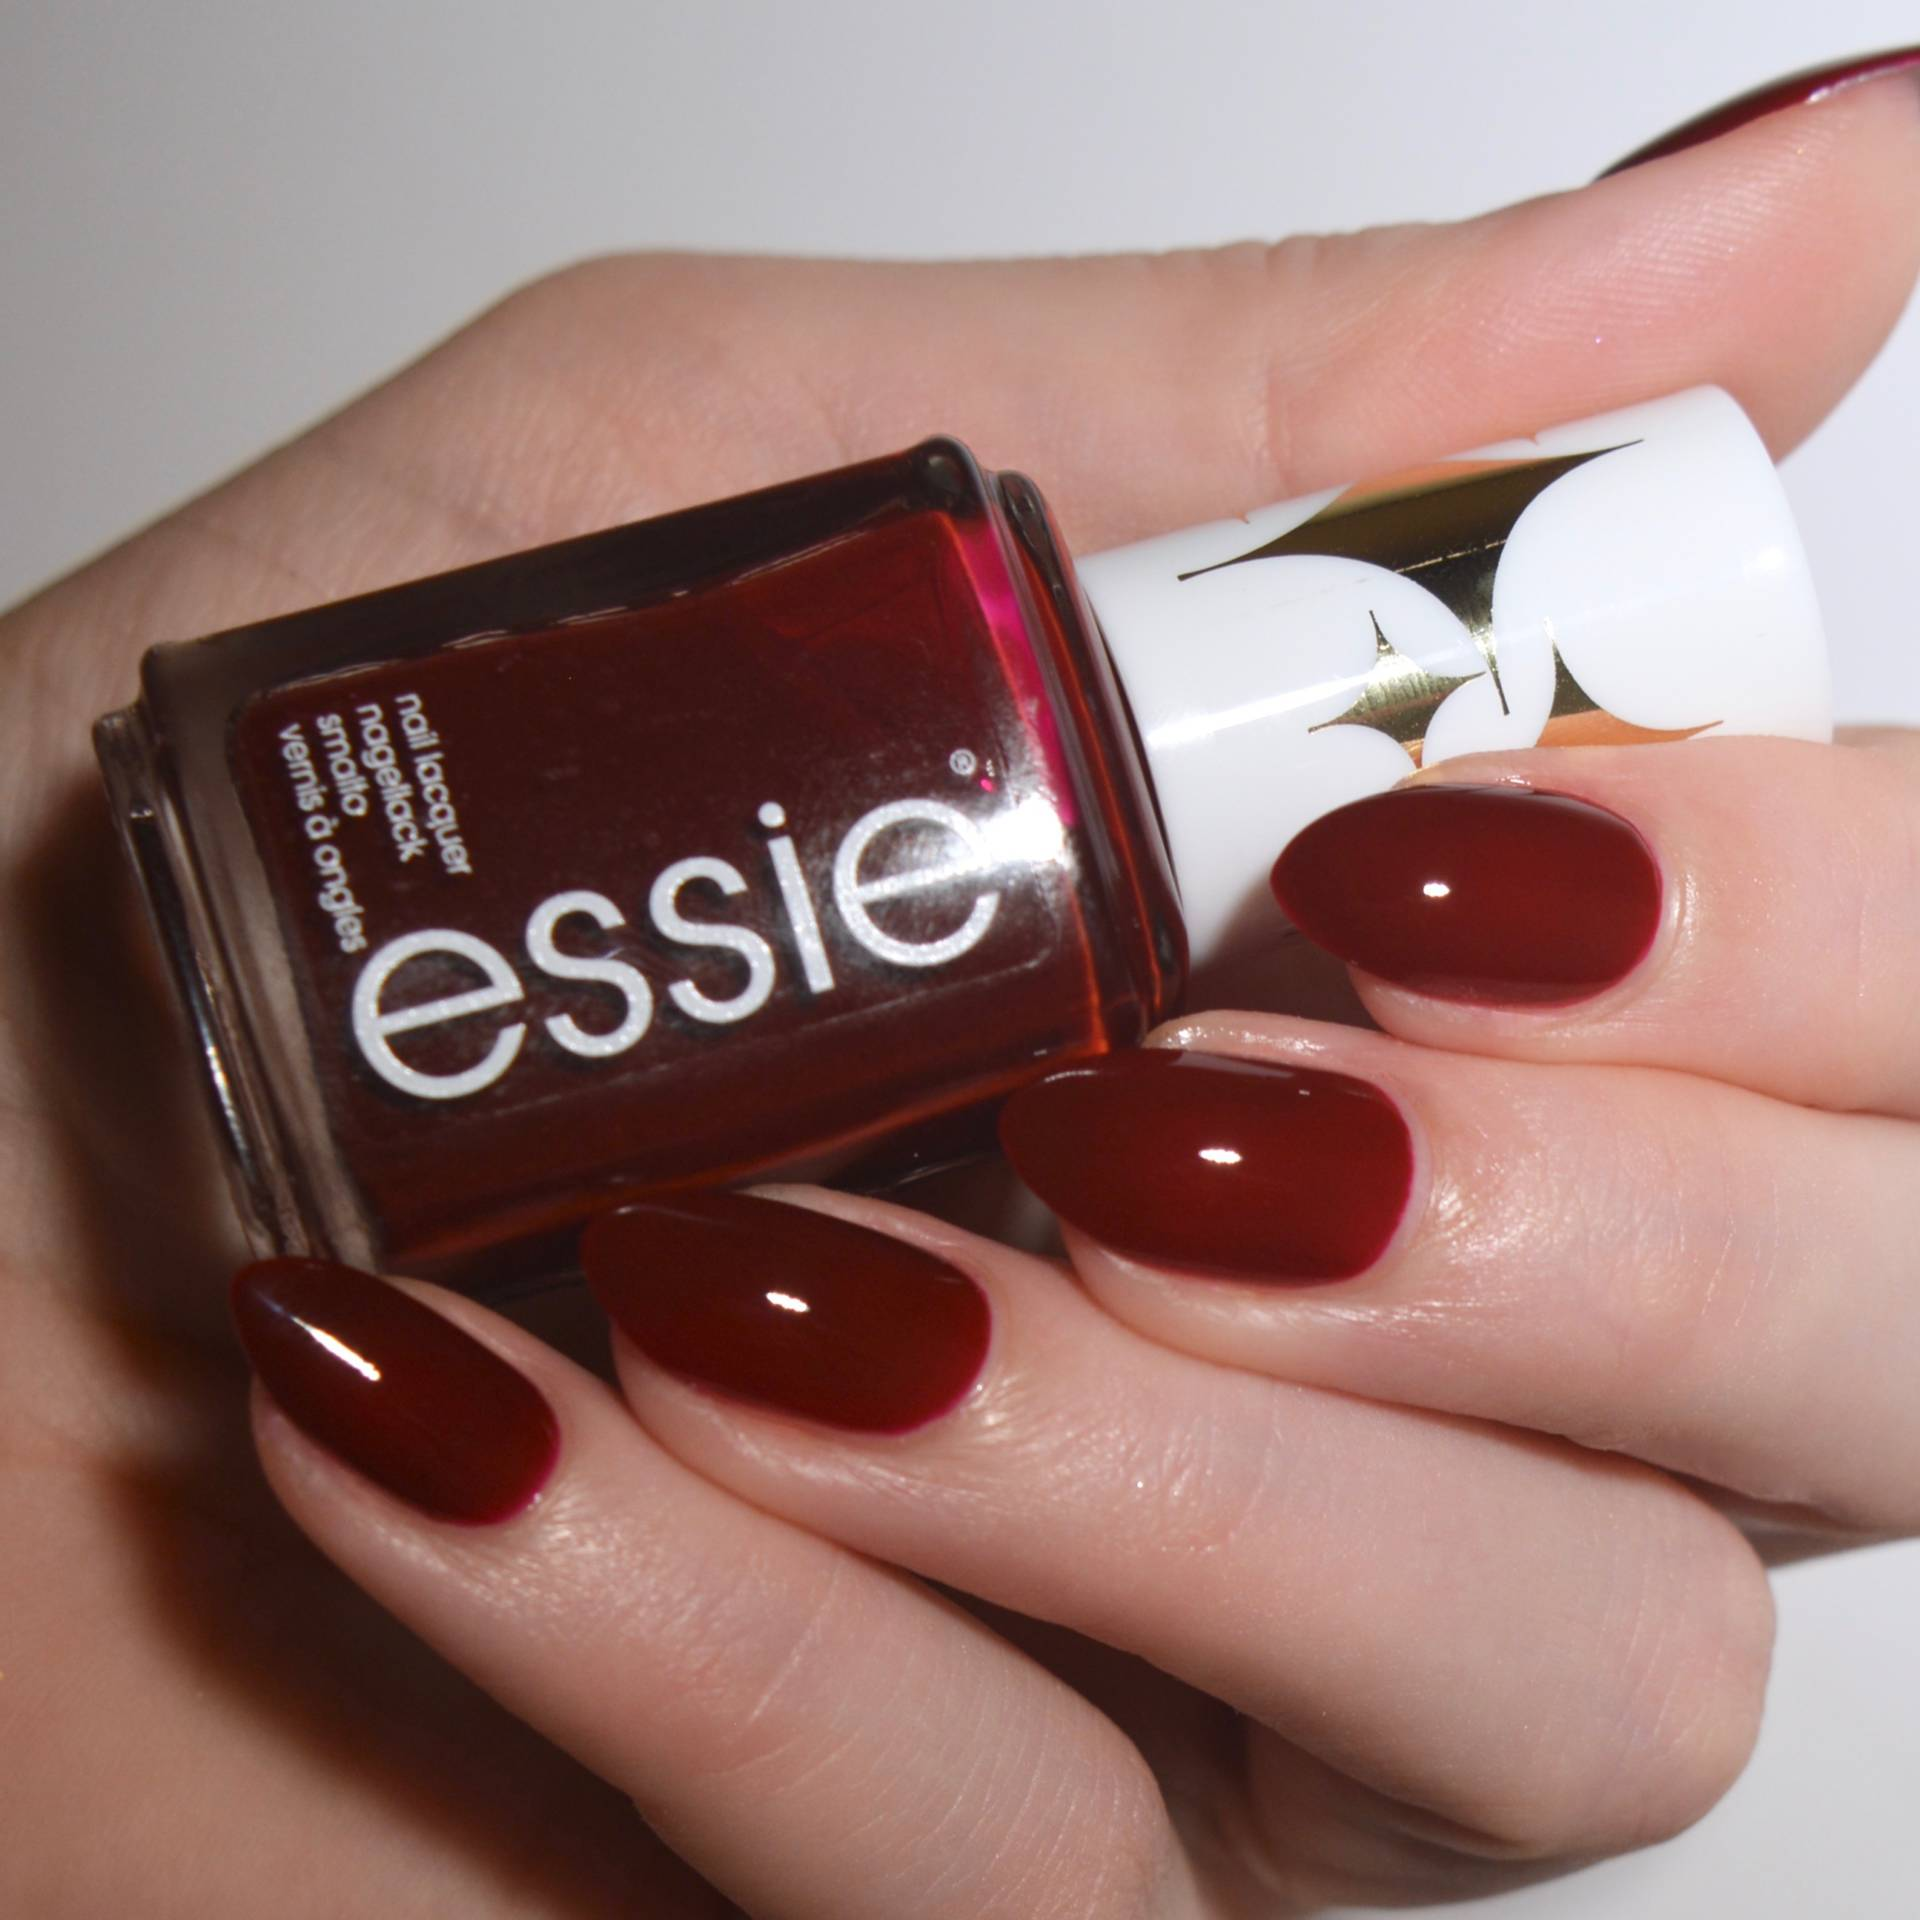 Essie 'Bold Beauty' from the Retro Revival 2017 collection. I love a dark vampy red nail varnish!